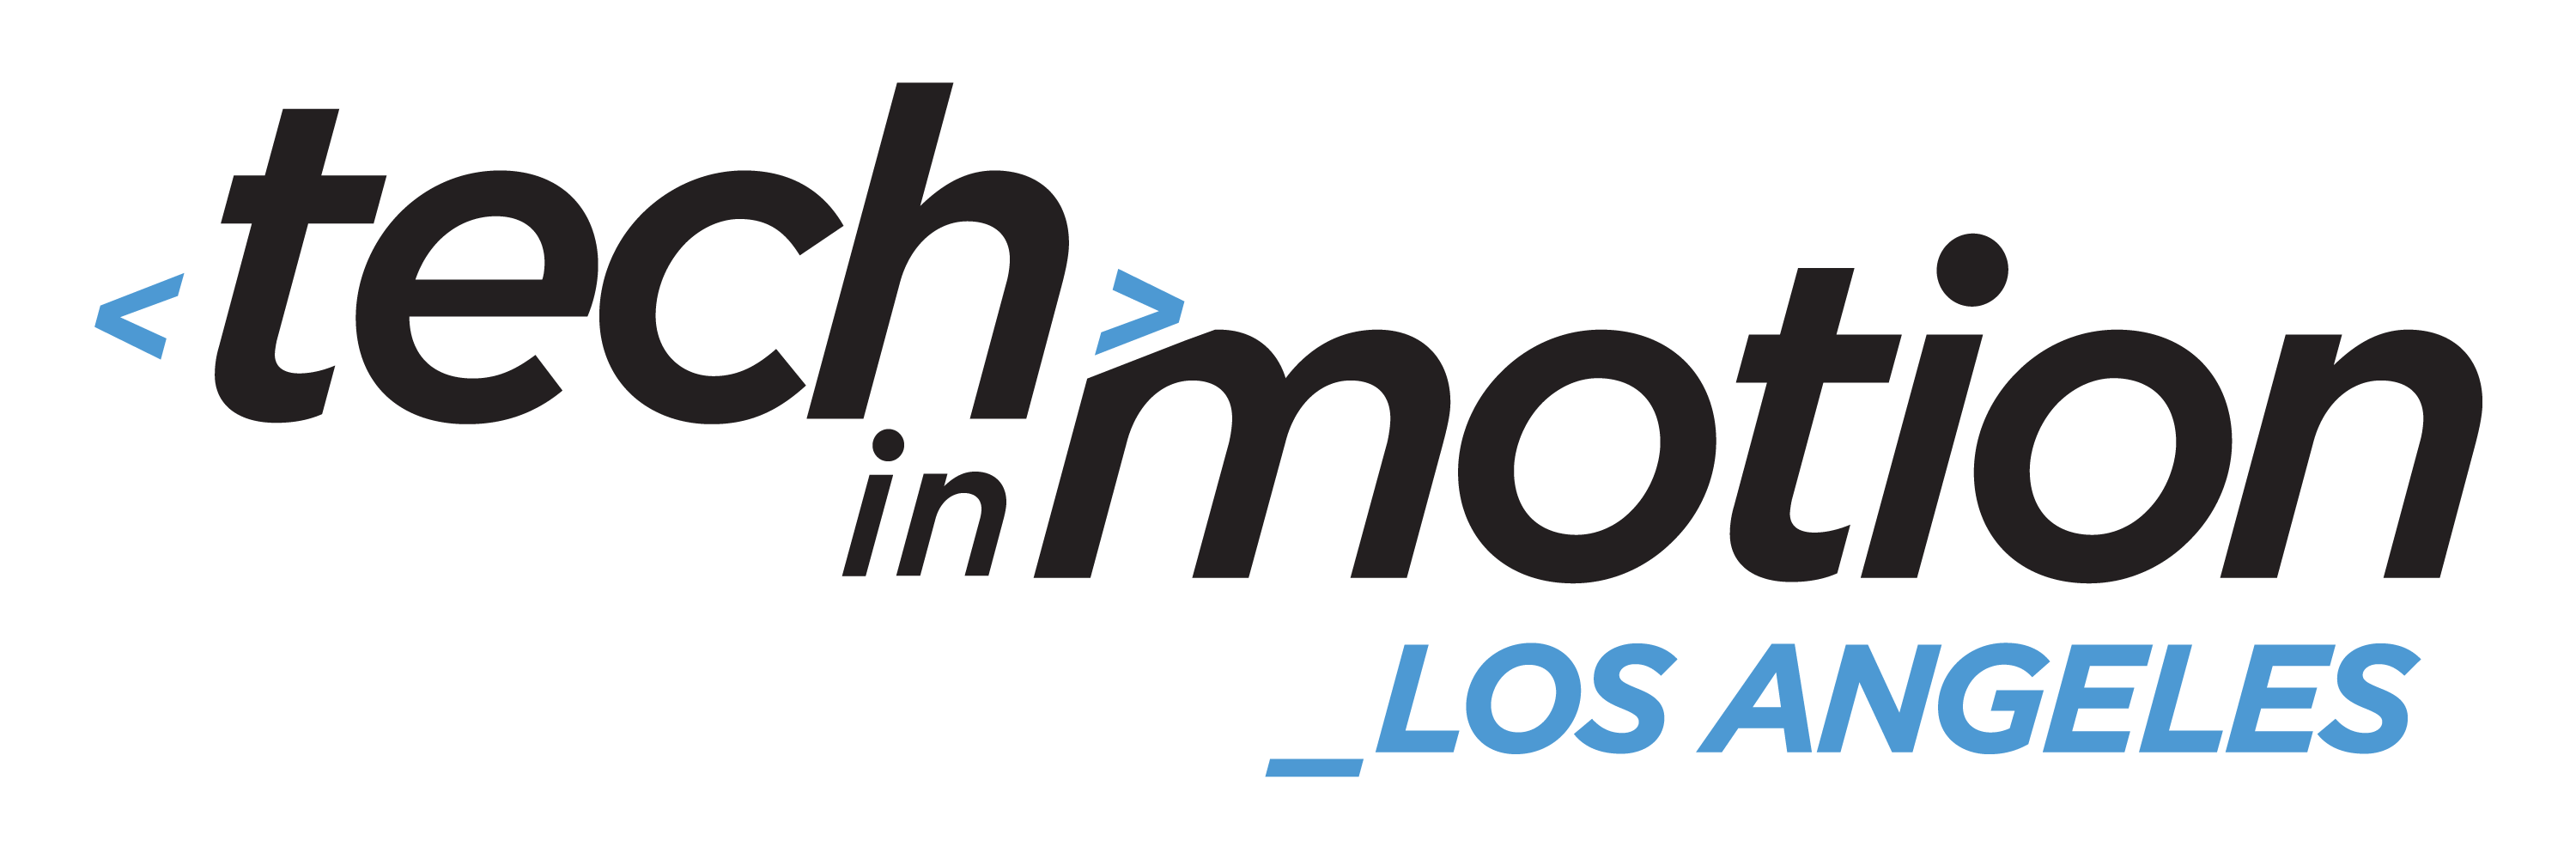 Tech in Motion LA logo